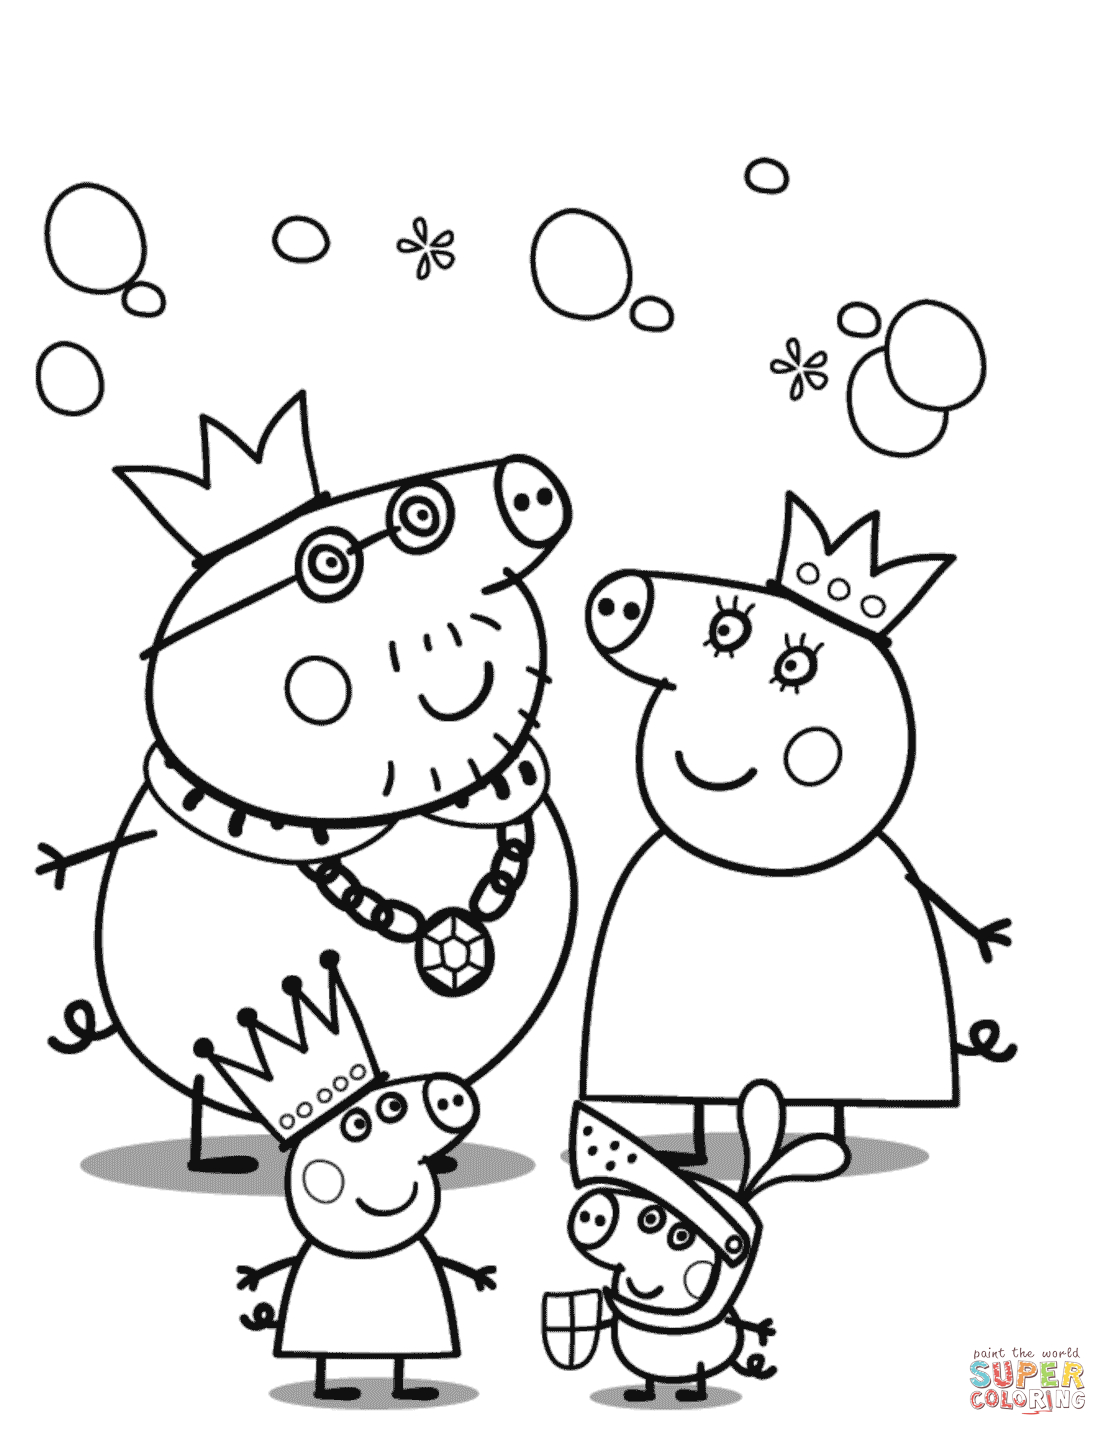 Peppa Pig Coloring Pages | Free Coloring Pages - Peppa Pig Free Printables